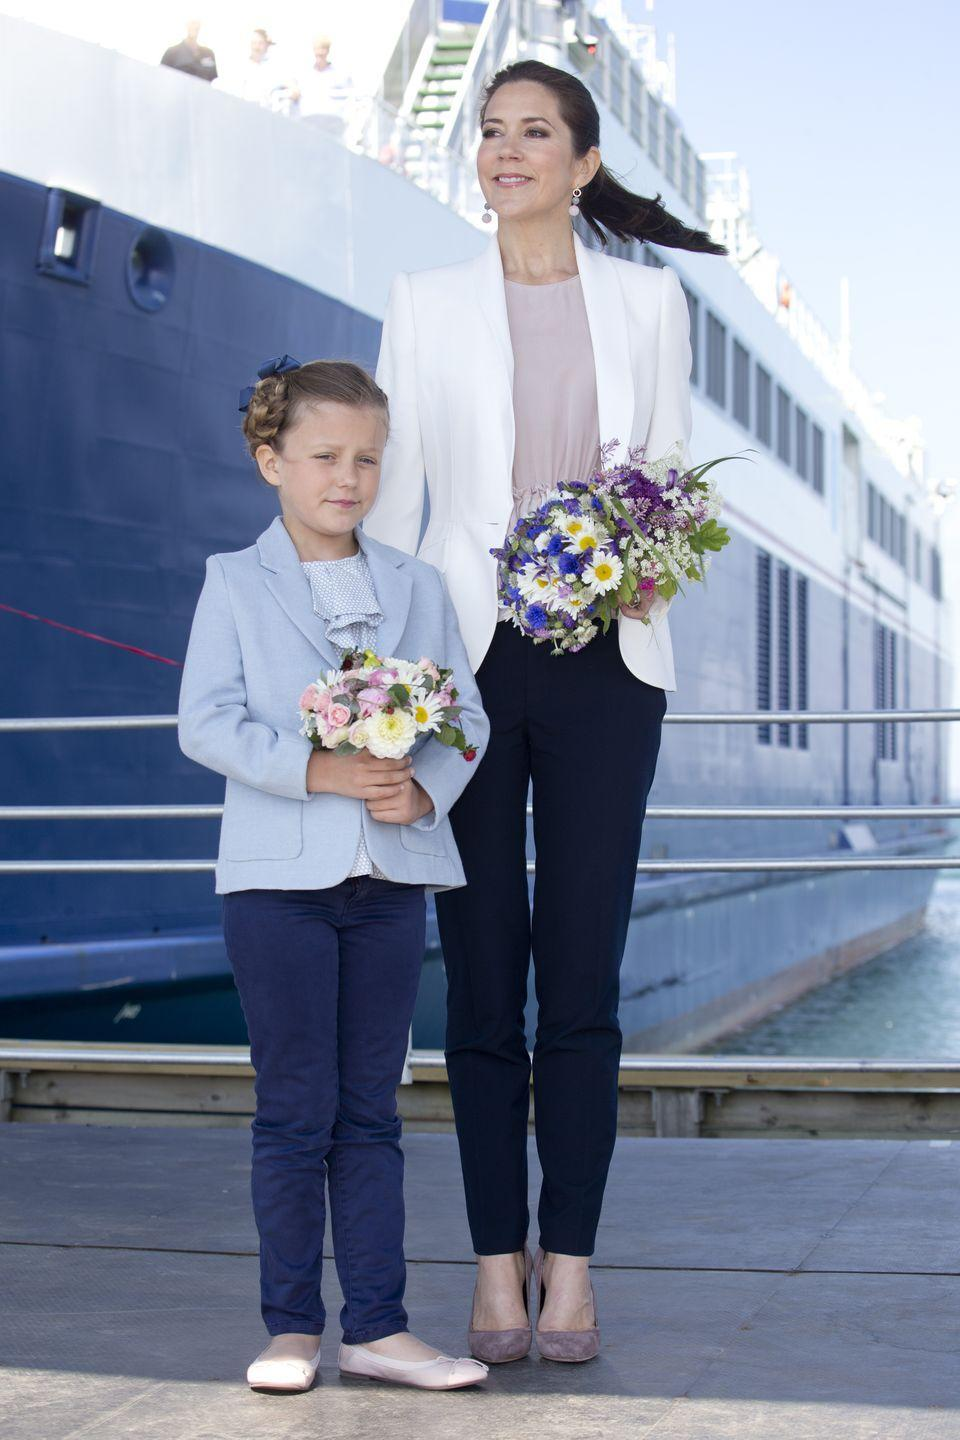 <p>The wife of the heir apparent to the Danish crown, Her Royal Highness, The Crown Princess of Denmark was not born into royalty. Crown Princess Mary is of Scottish descent, but was raised in Australia, and met the prince in a pub in Sydney in 2003. </p>